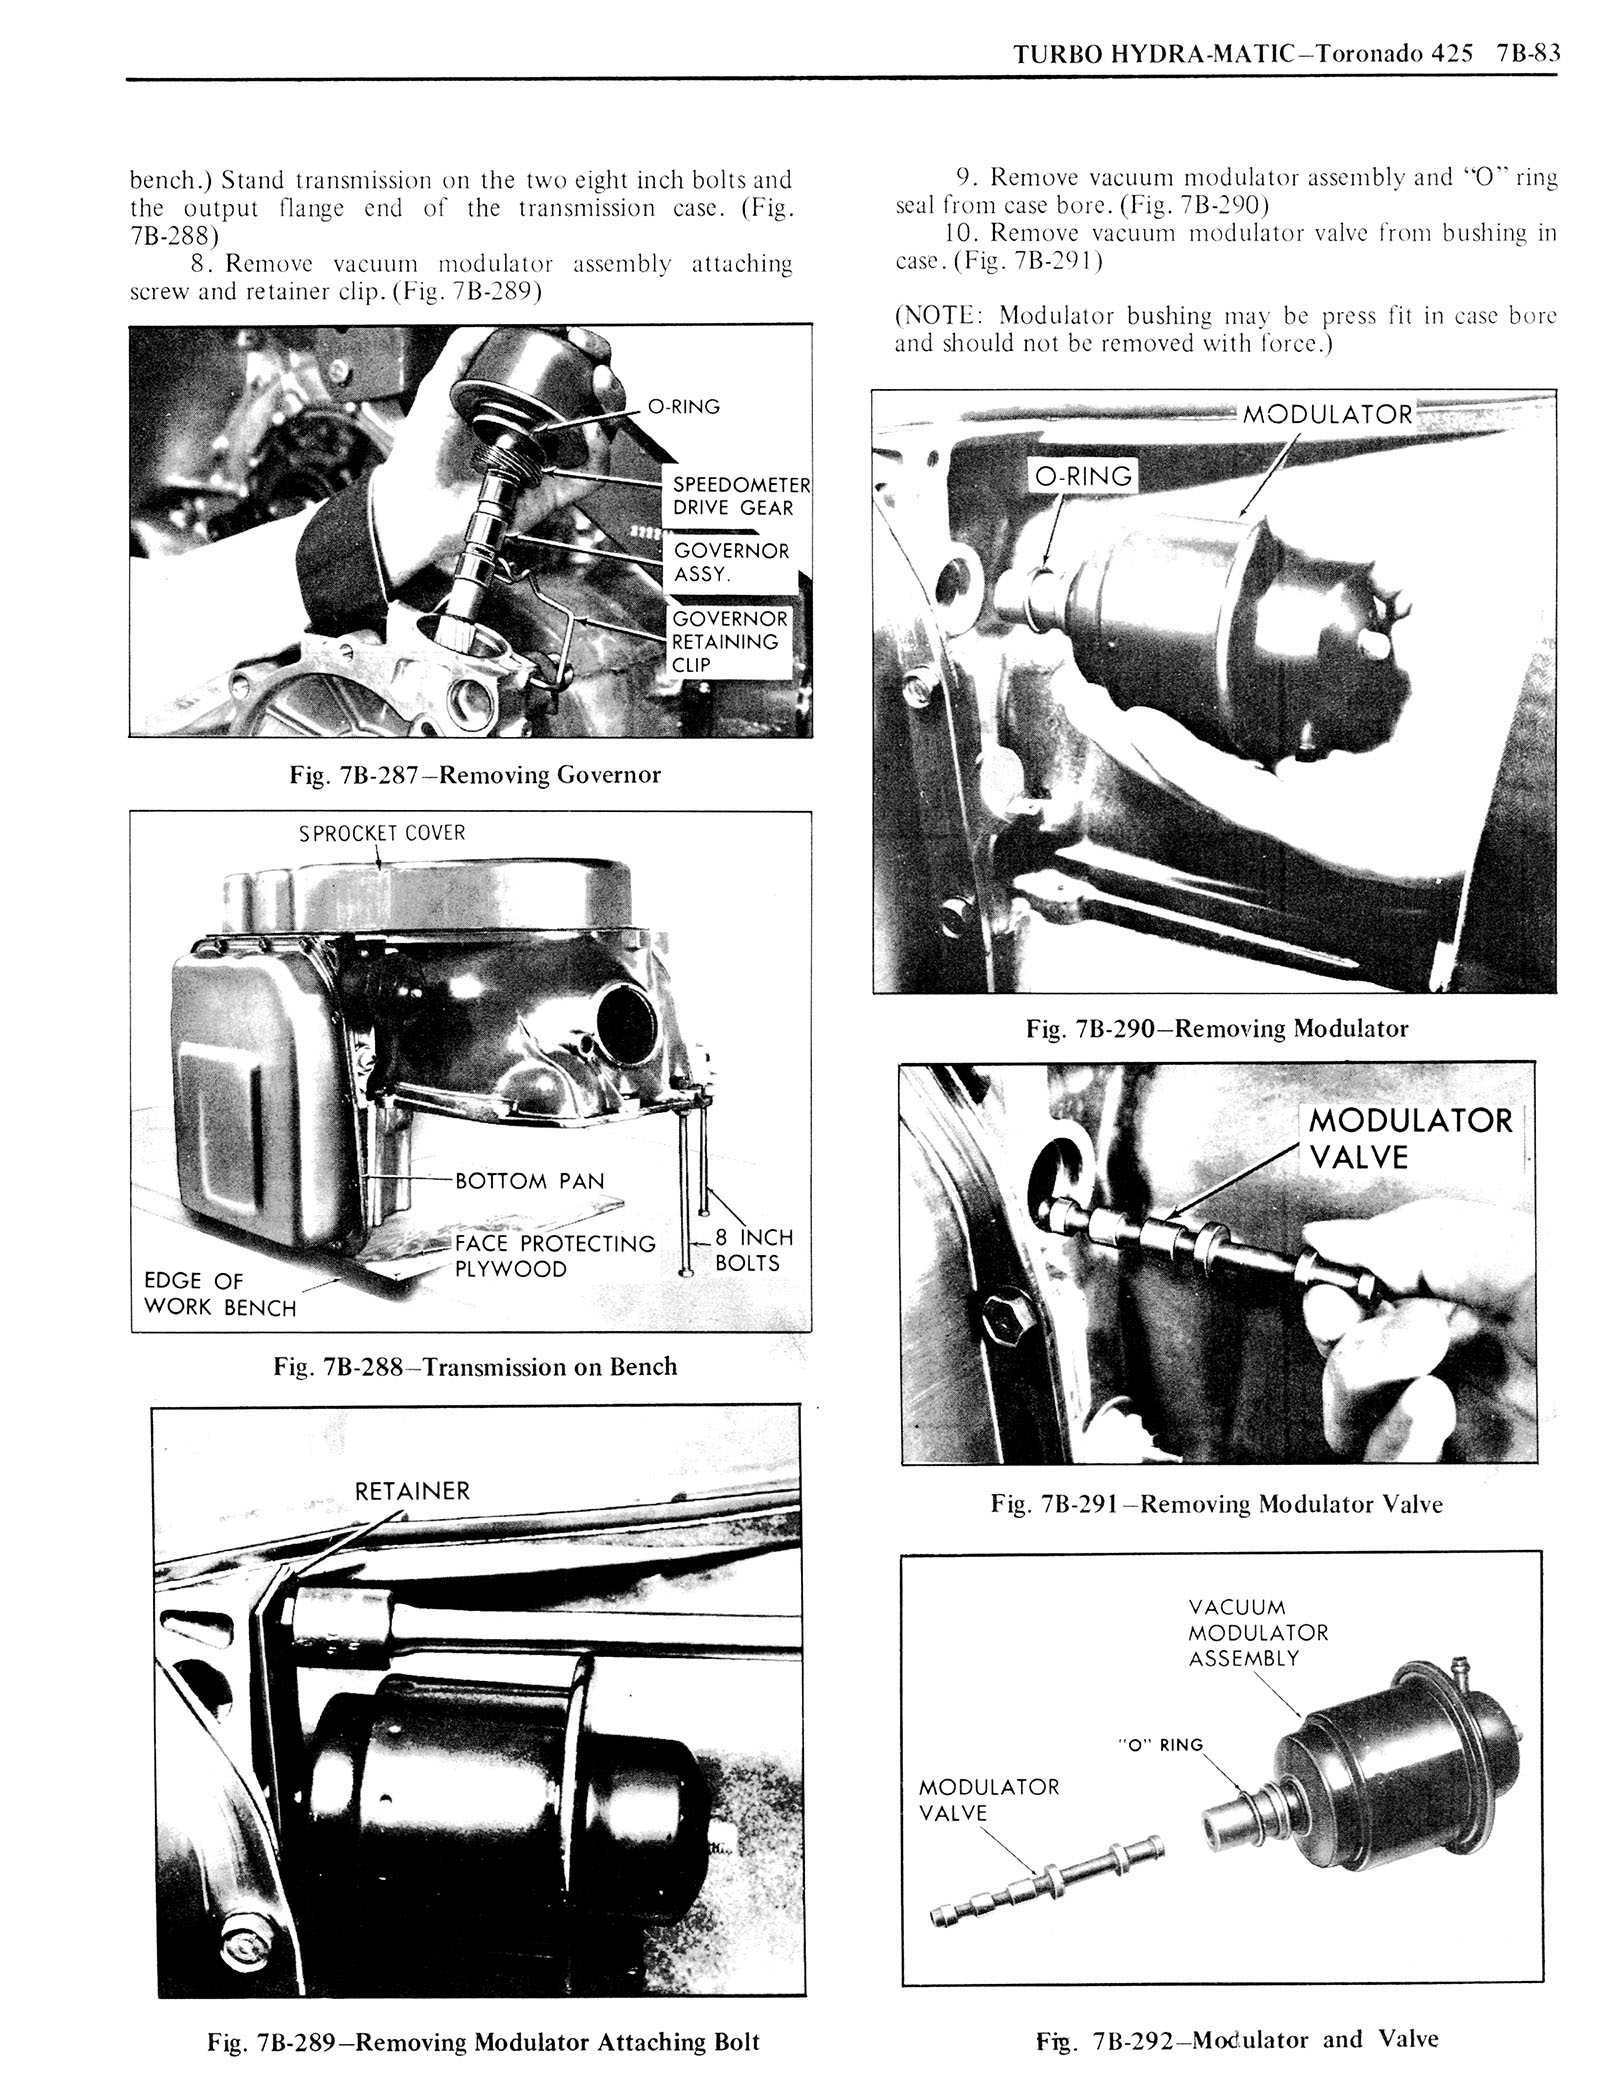 1976 Oldsmobile Service Manual page 815 of 1390